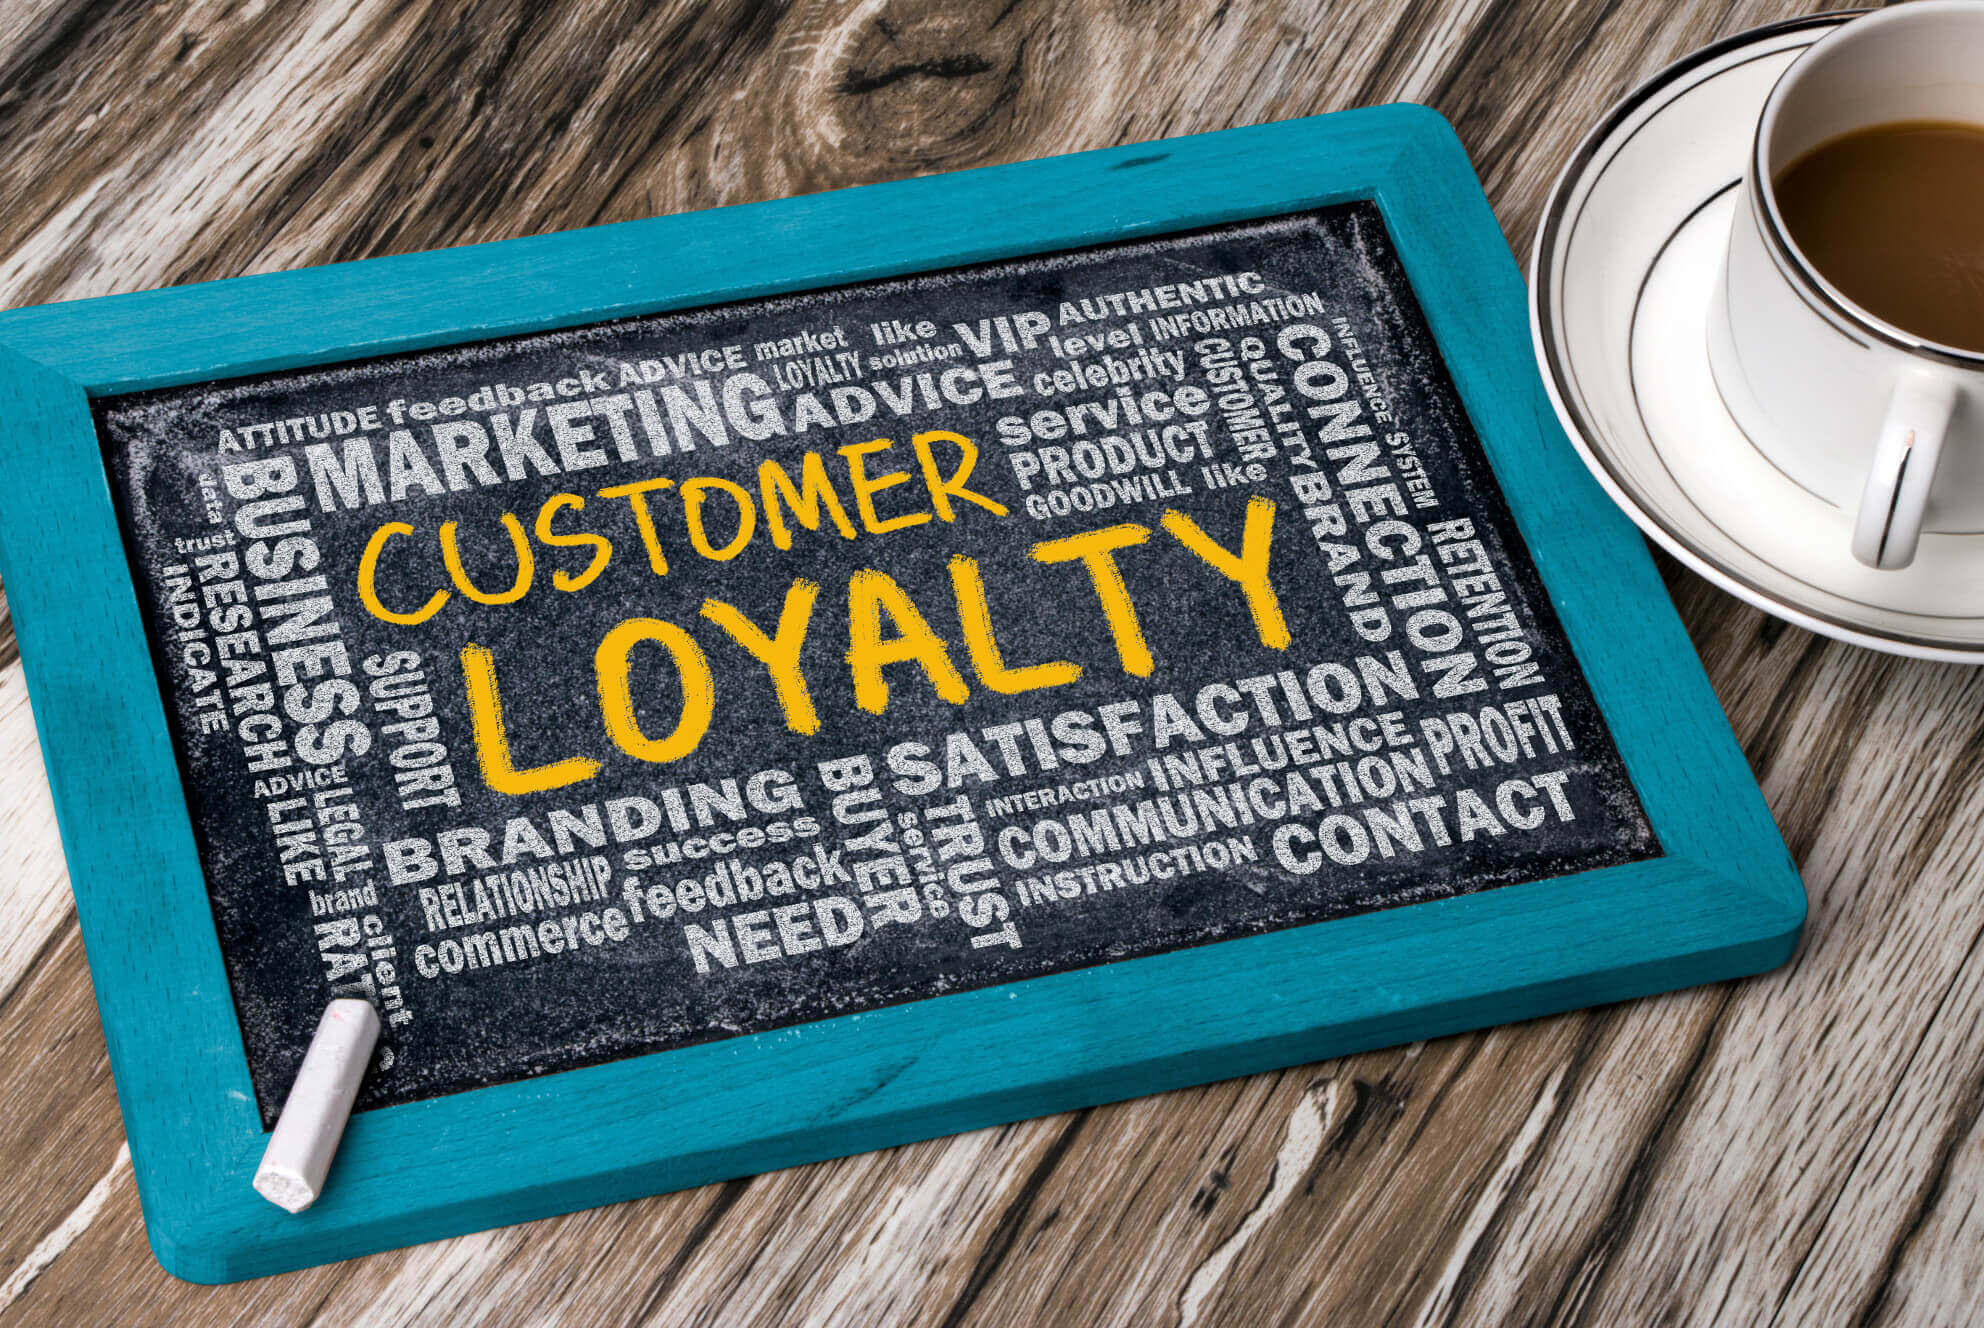 Loyalty … what exactly does that mean?